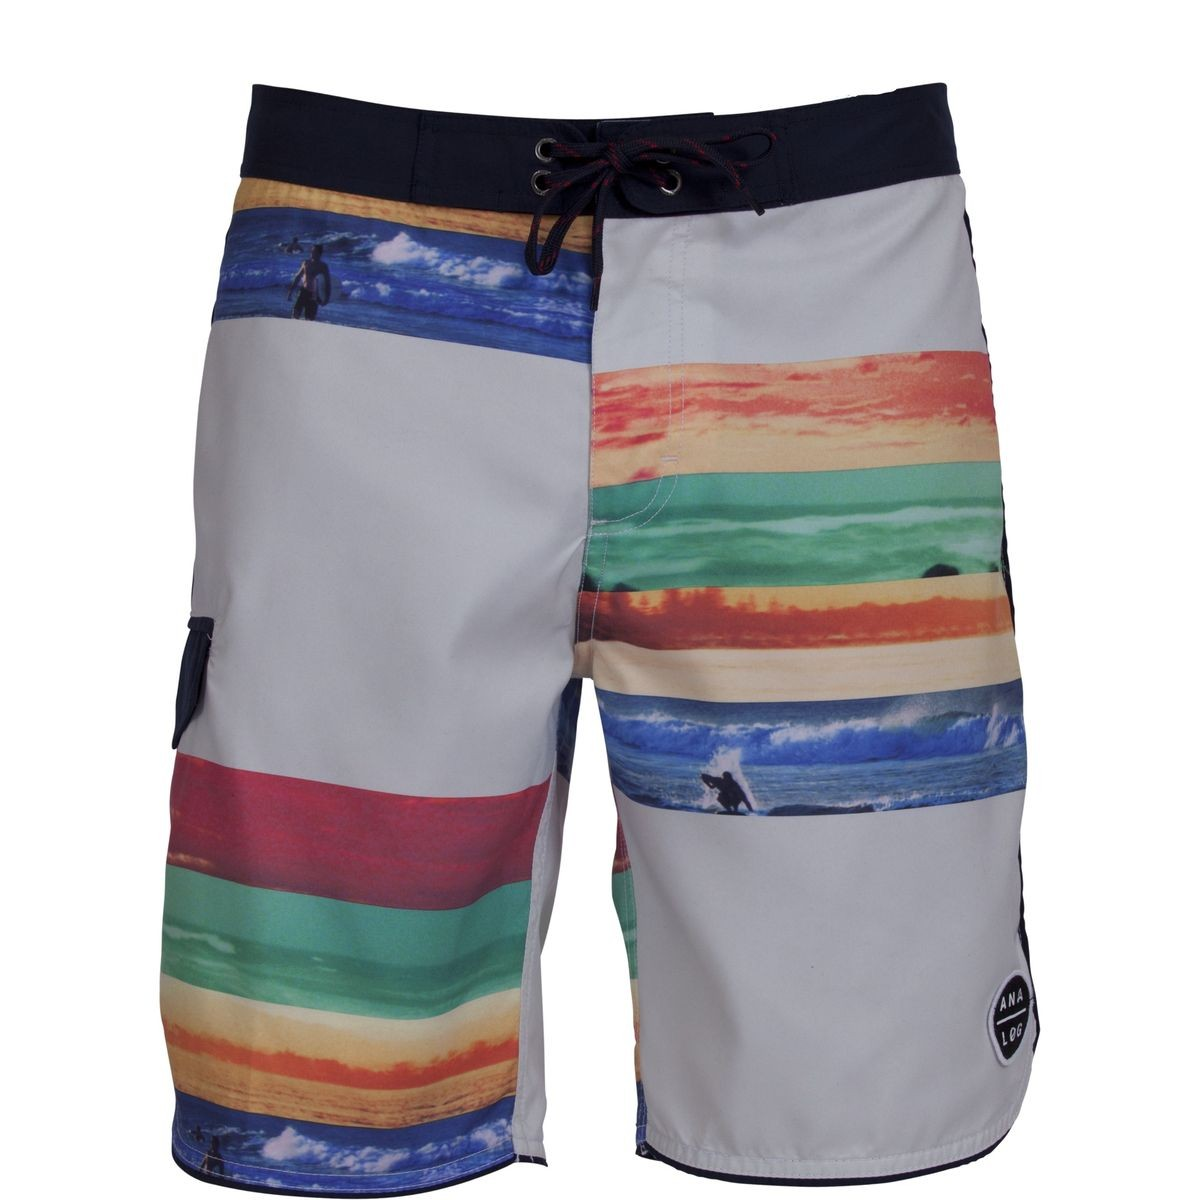 Analog Chroma Boardshorts - Halsband